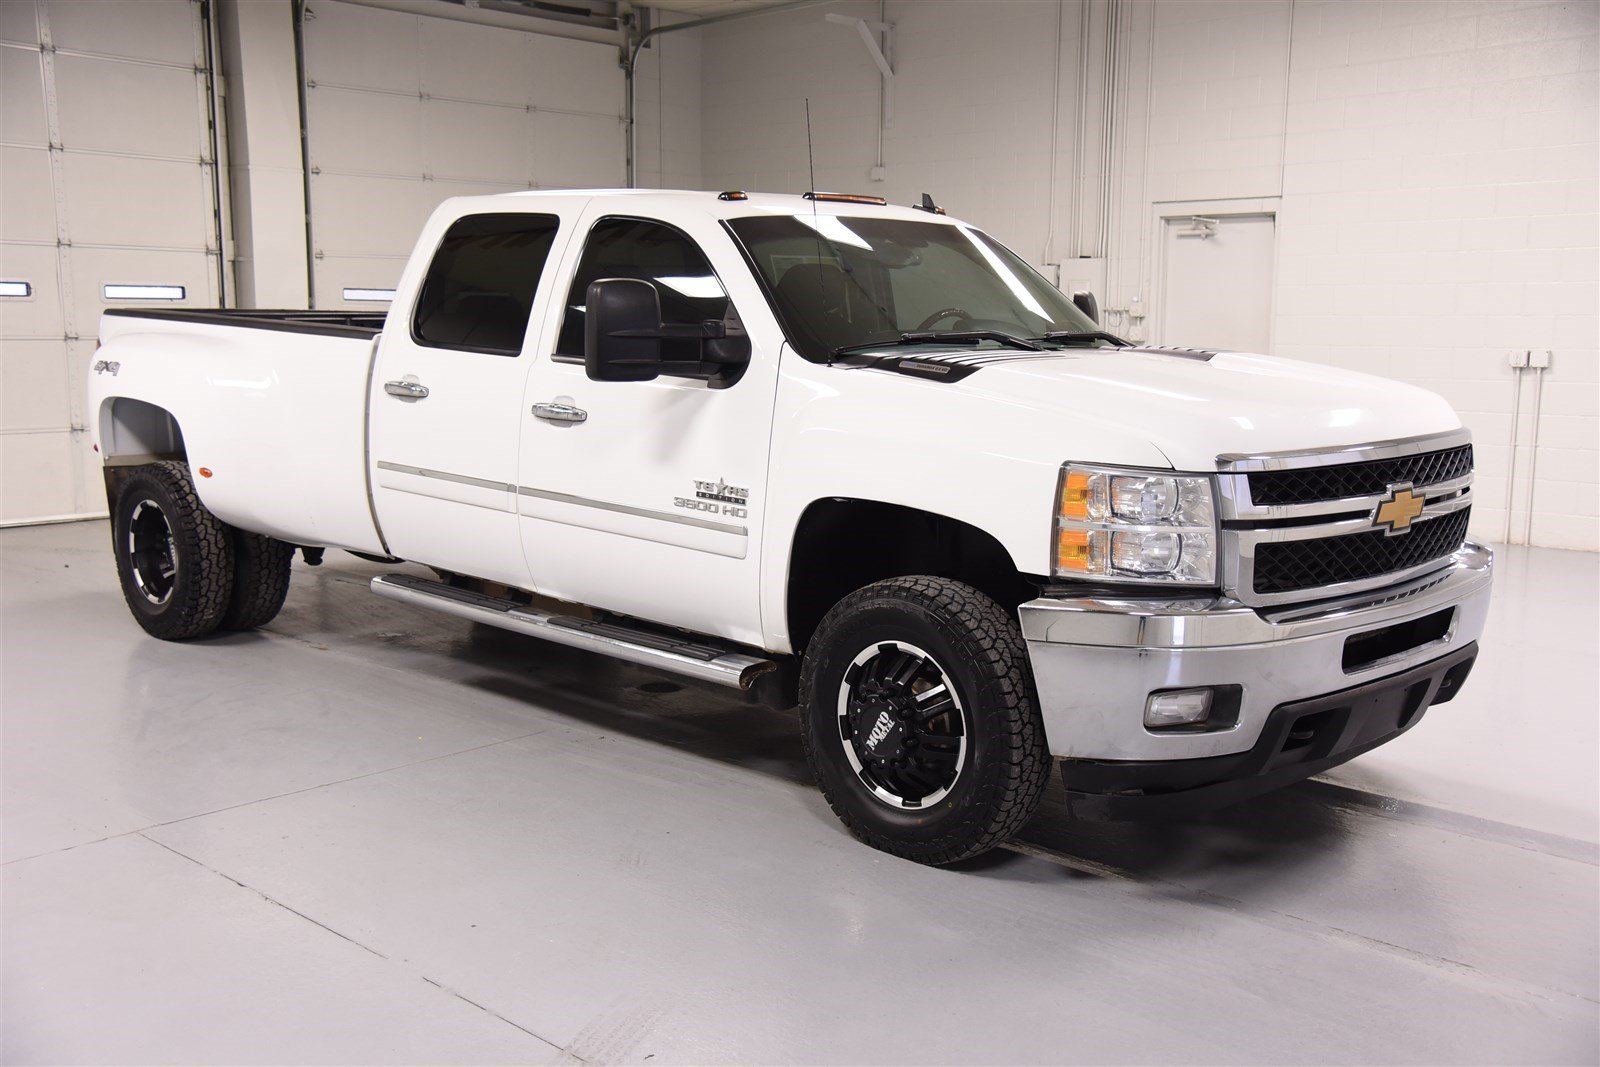 Pre-Owned 2012 Chevrolet Silverado 3500HD Crew Cab LT 4X4 - Dually